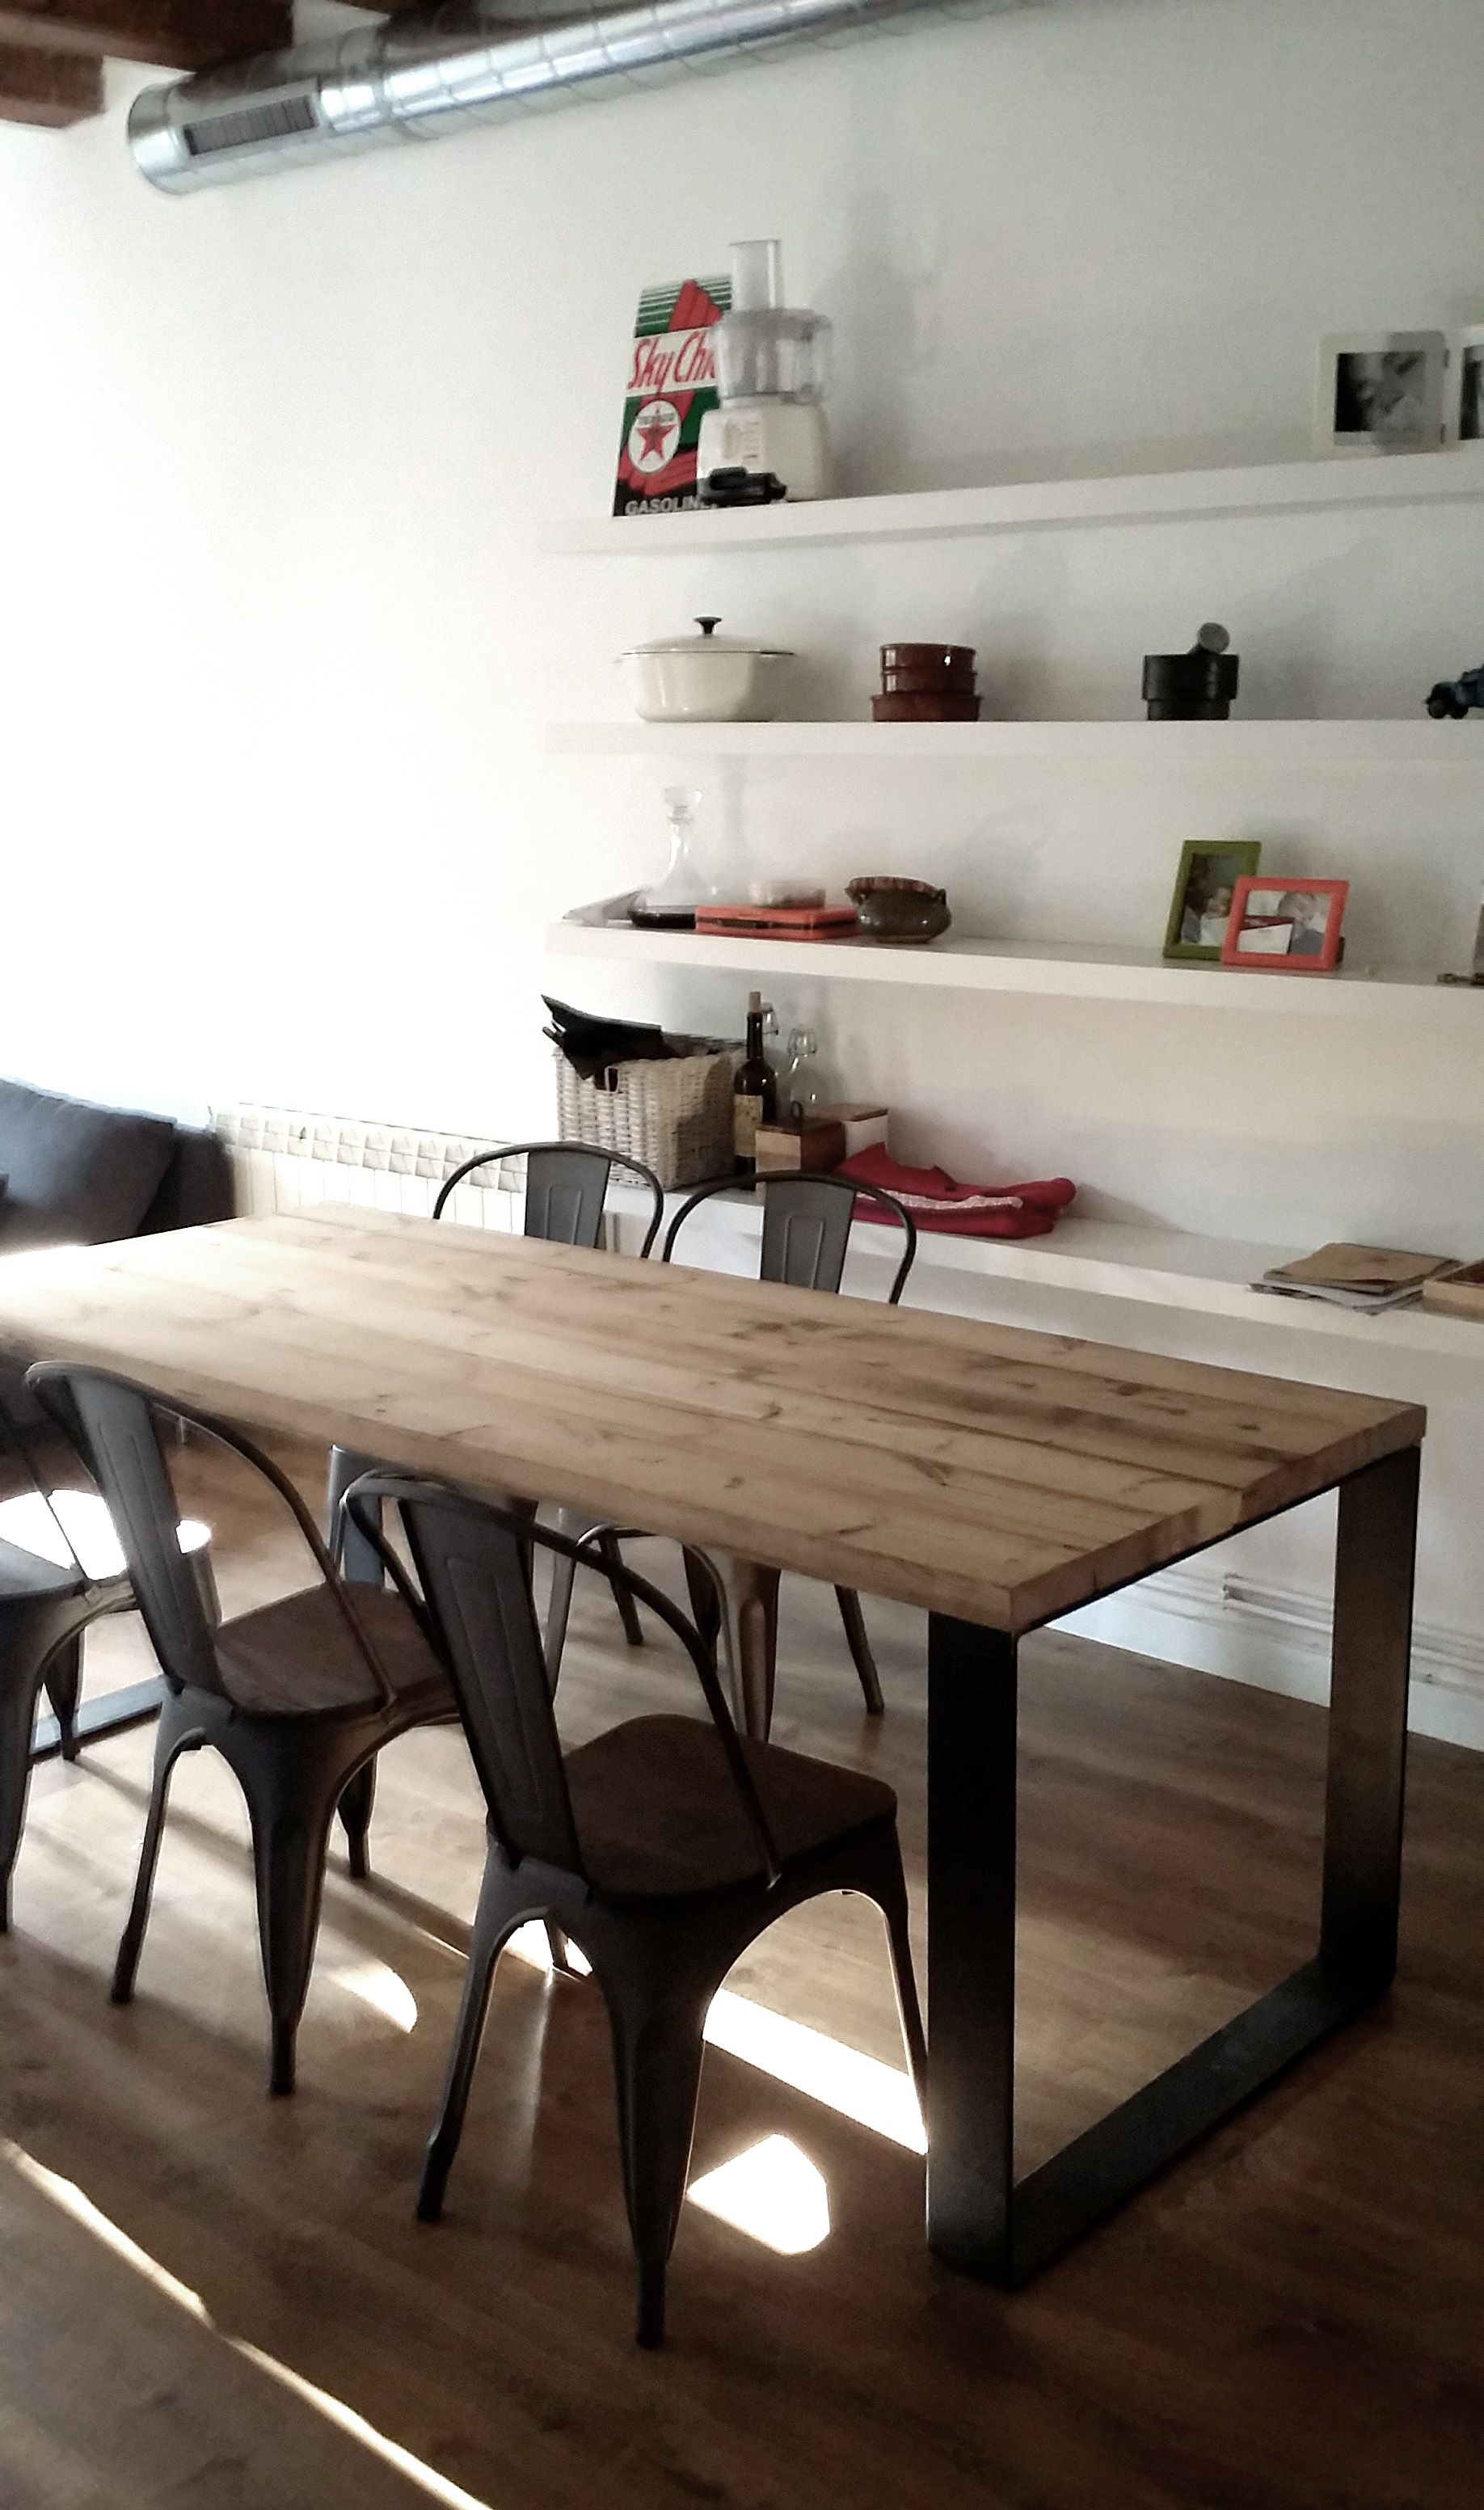 Dining tables gerrit industrial style rustic pine iron dining table - Sillon Madera Hierro Buscar Con Google Muebles Hierro Madera Pinterest Outdoor Tables Armchairs And Exterior